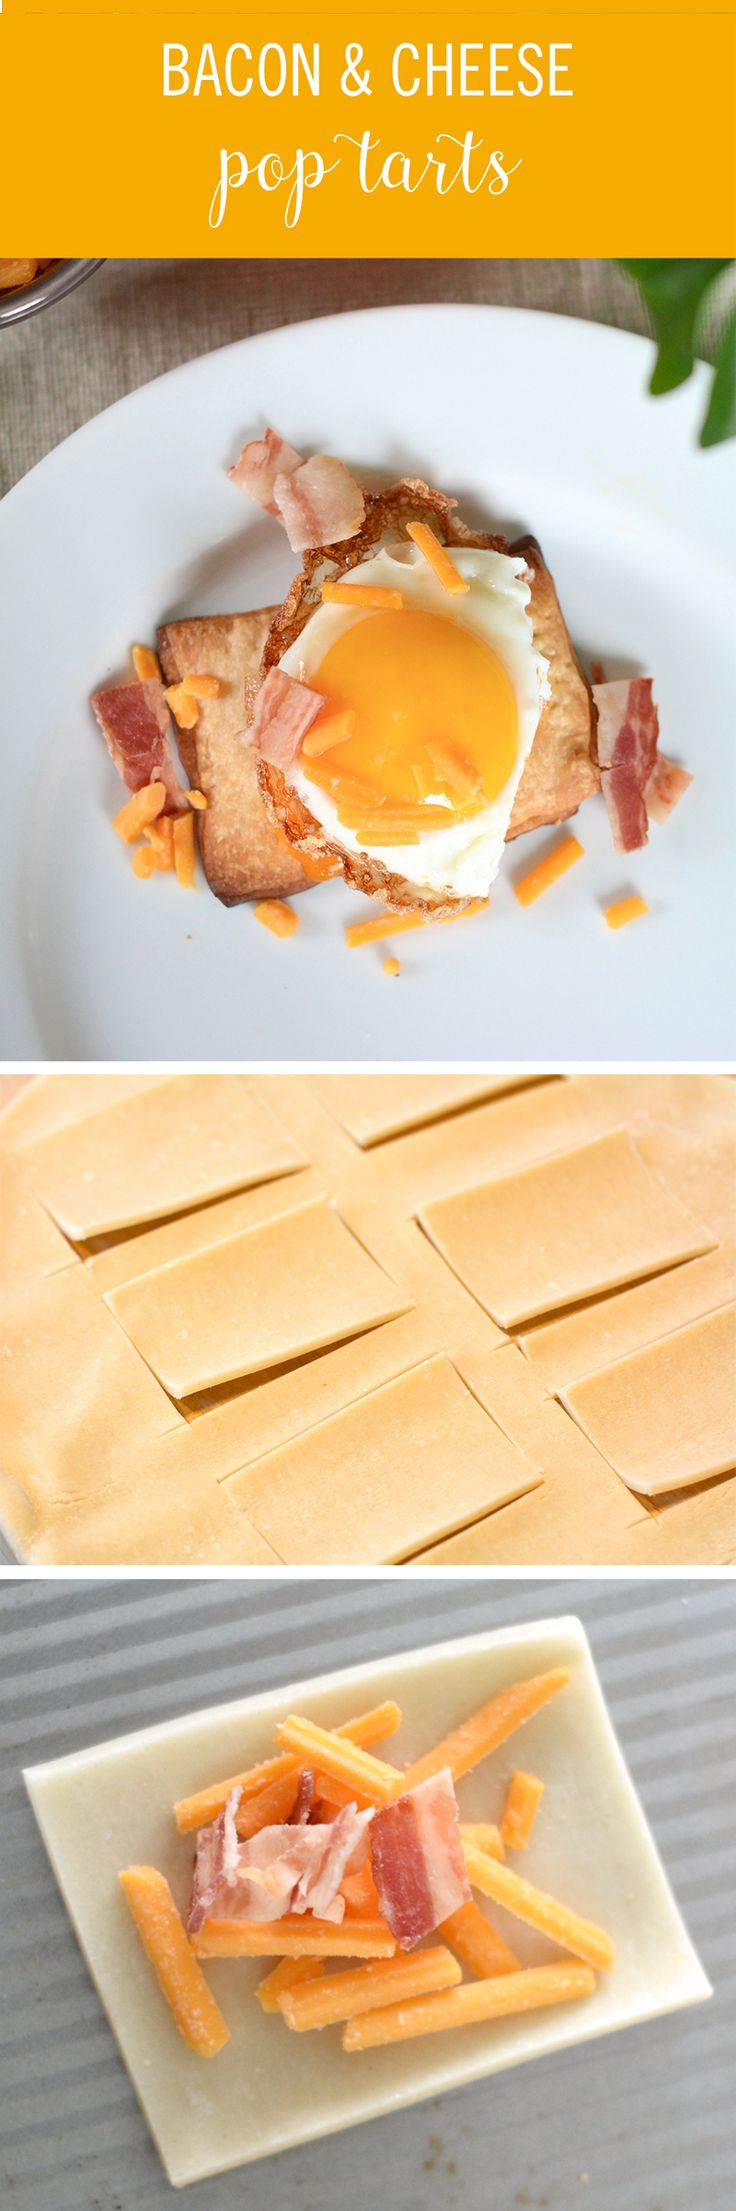 These Homemade Bacon Cheddar Pop Tarts are a perfect savory breakfast. The pop tart dough is made with store-bought pie crust, filled with cooked bacon and a little cheese. Then, once baked, top them with more cheese, crumbled bacon, and sometimes, a fried egg. The 4-ingredient recipe is super simple, and so fun to make!